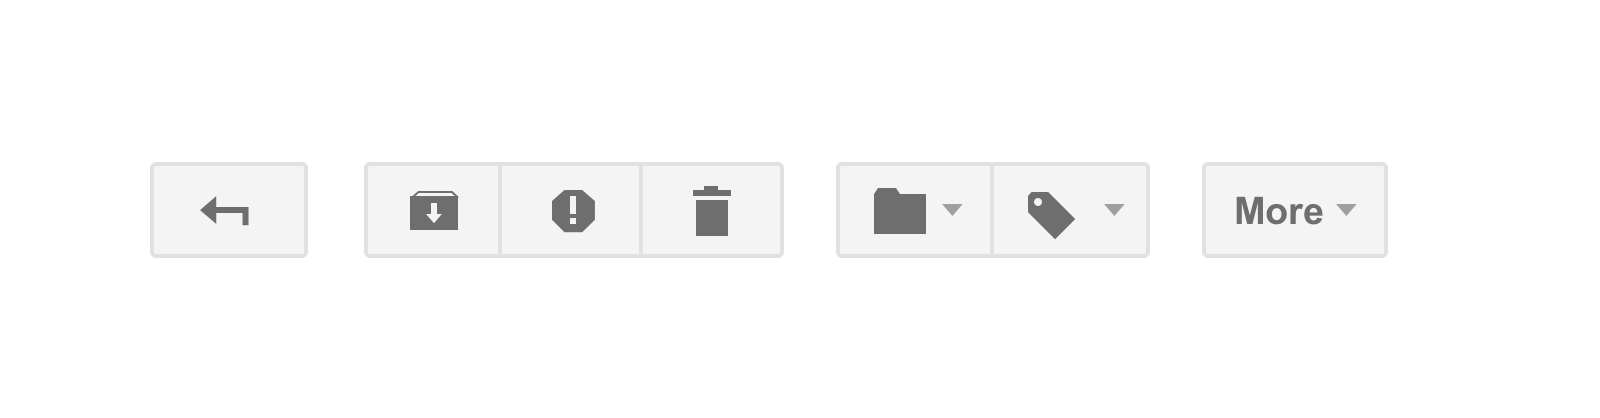 gmail-icons-only